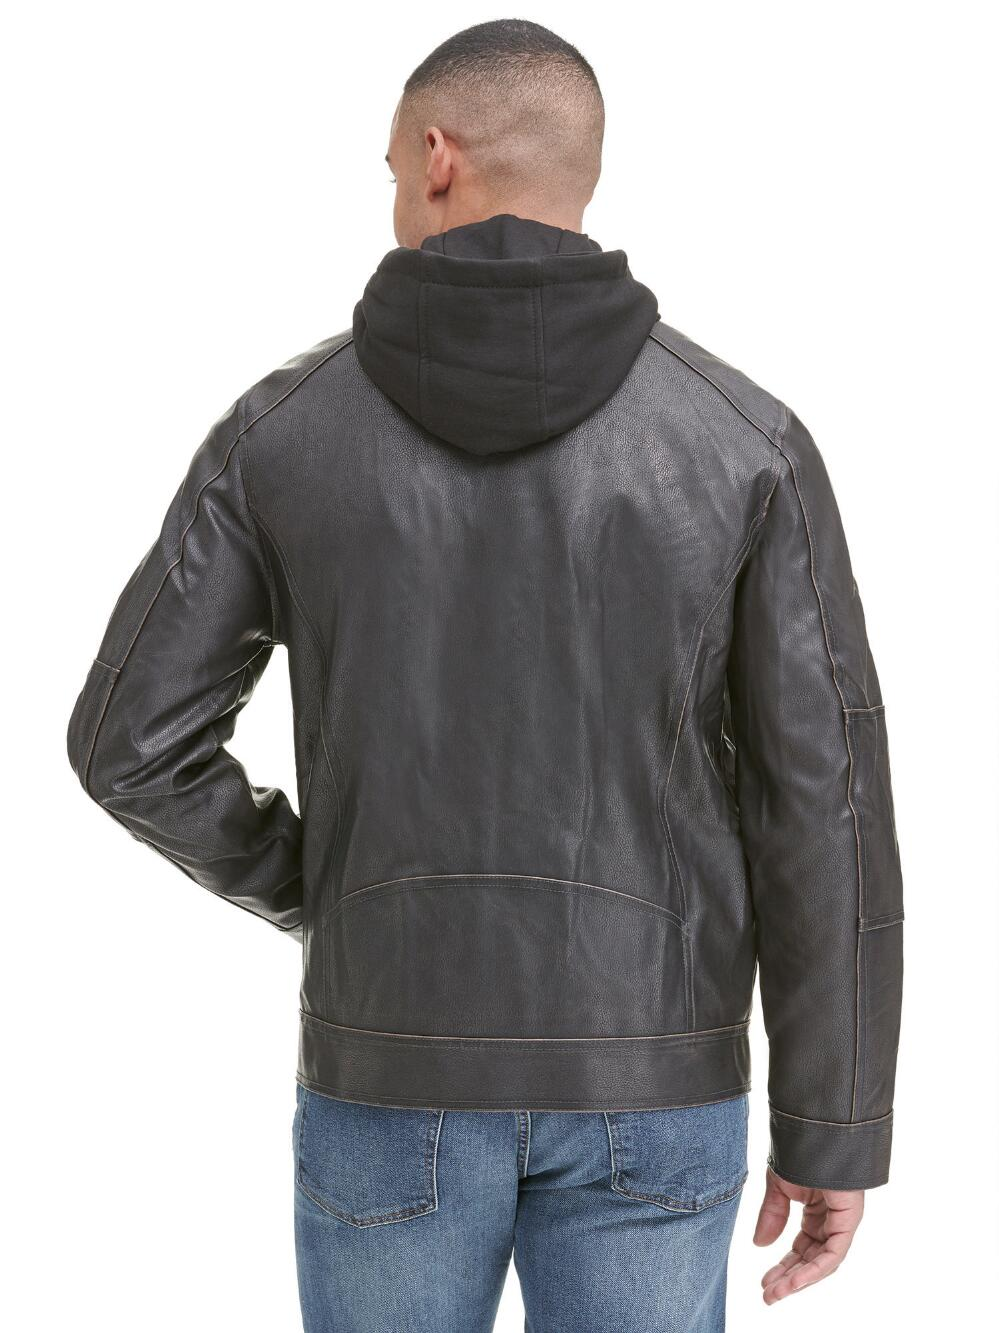 Patch Pocket Hooded Faux-Leather Jacket - Get Custom Leather Jackets